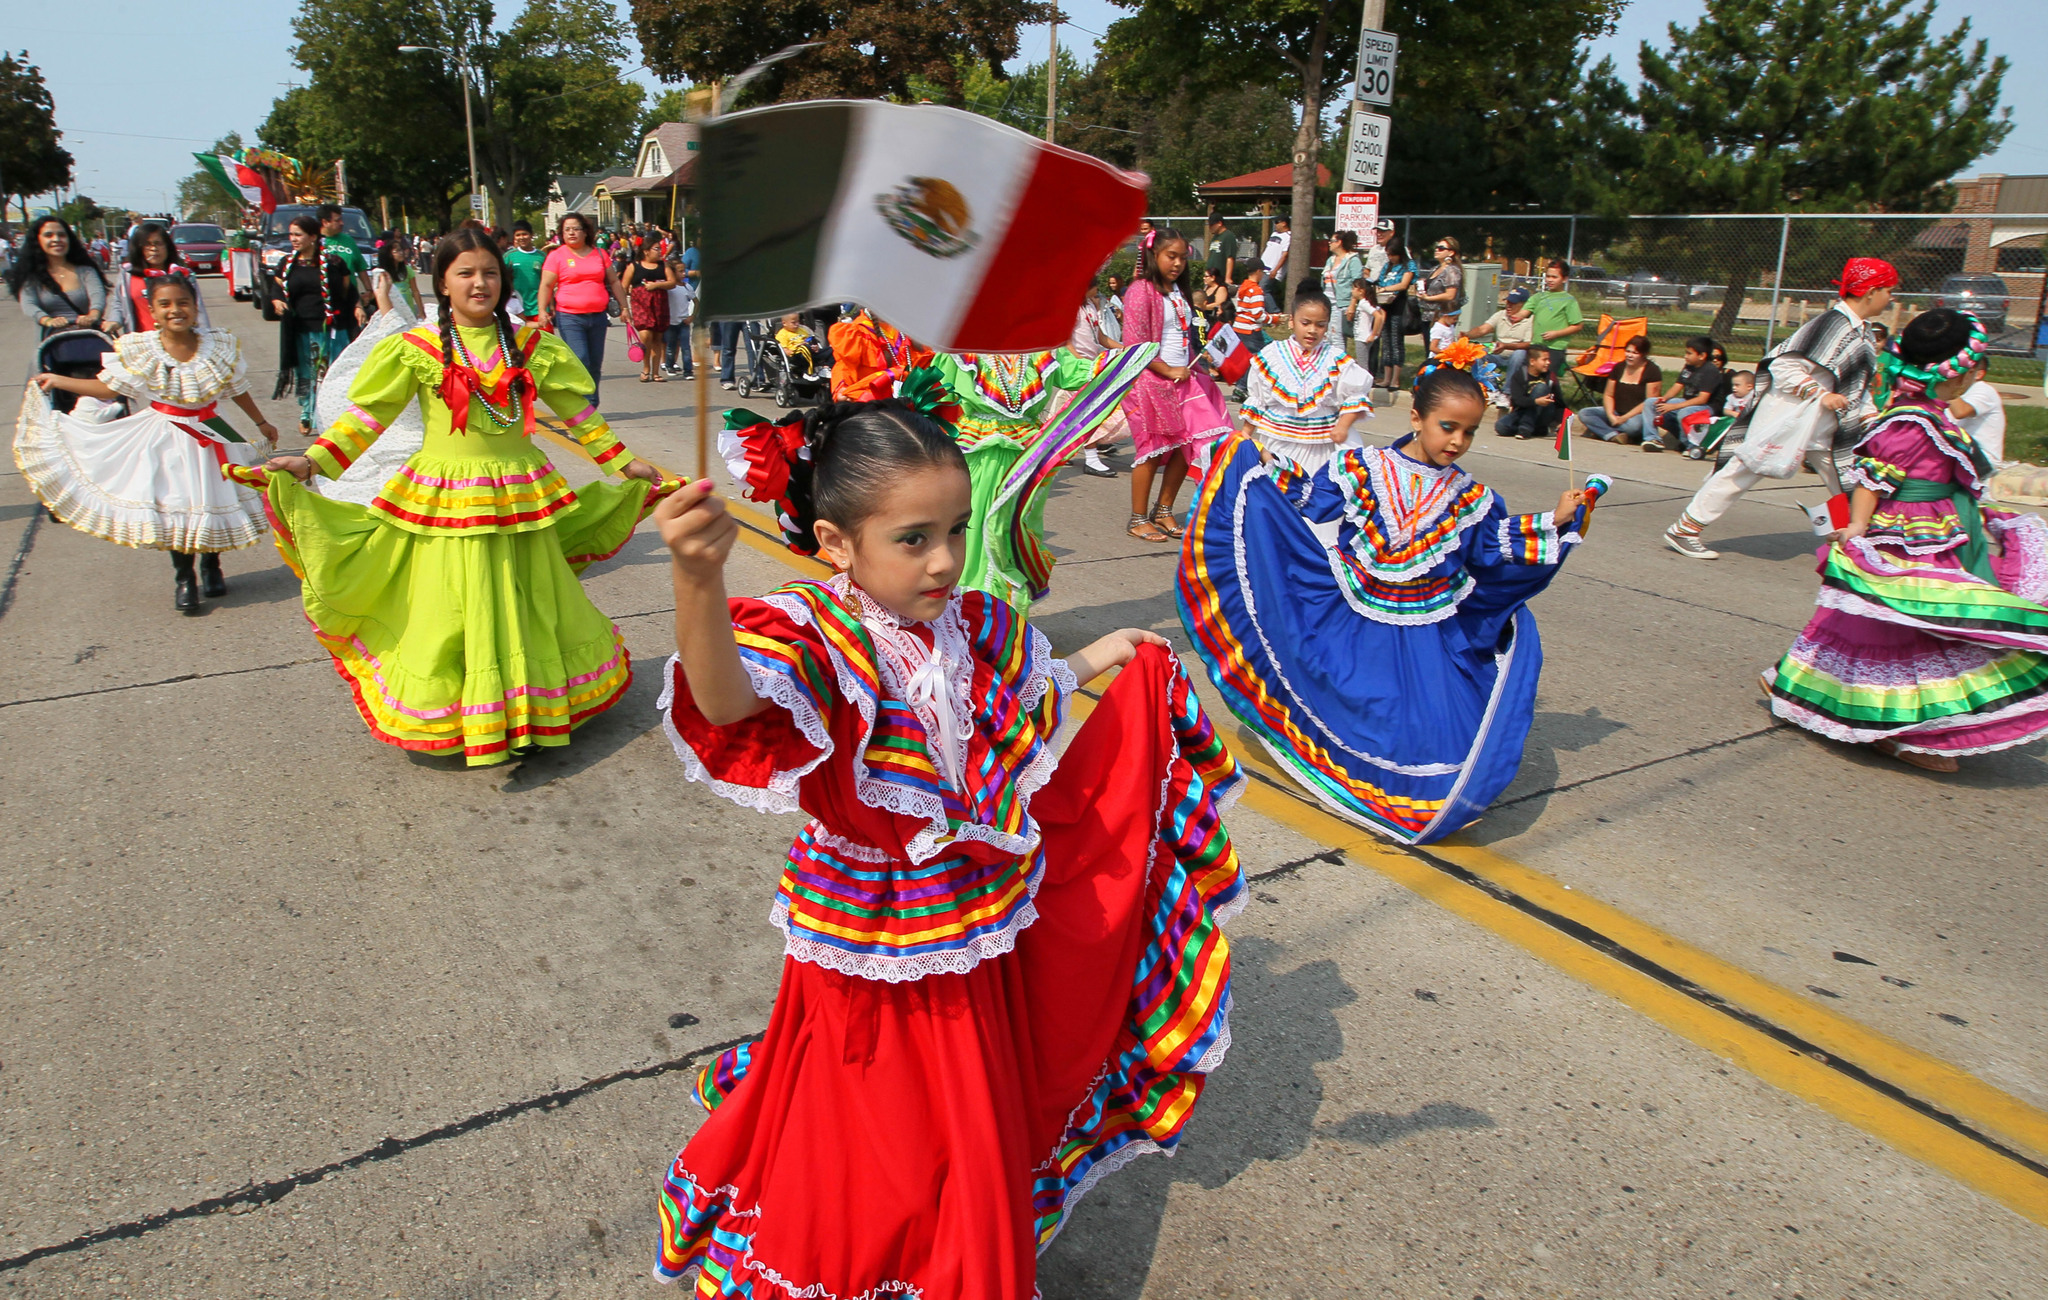 September 16, 2012 Photographs from the Mexican independence day parade. It kicked off at S.20th and Oklahoma and ended at the UMOS center at 2701 S. Chase Ave. The event celebrates the Mexican War of Independence, from Spanish colonial authority. Dancers in traditional Mexican dresses filled the street with color as they passed. MICHAEL SEARS/MSEARS@JOURNALSENTINEL.COM